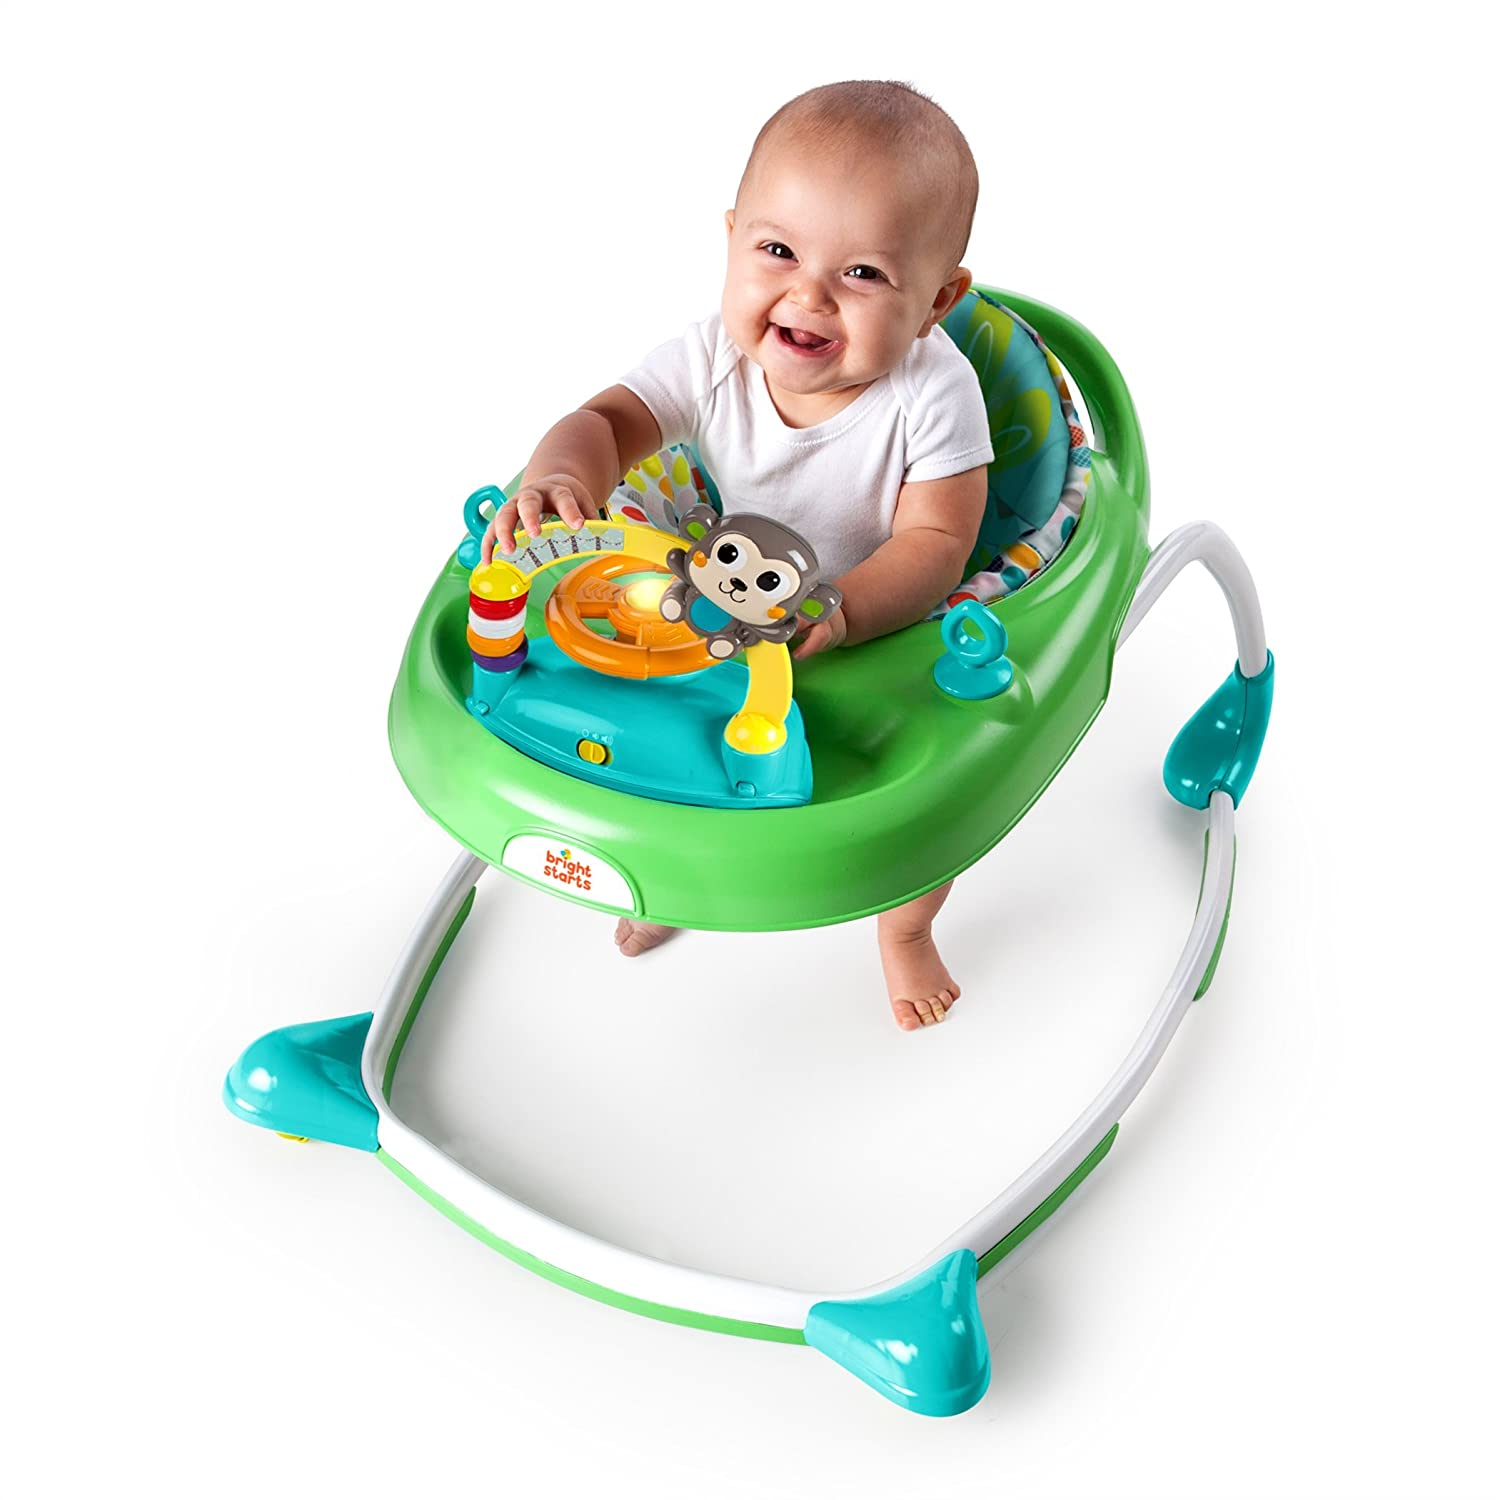 Amazon Bright Starts 2 in 1 Walkin Wild Walker Green Baby